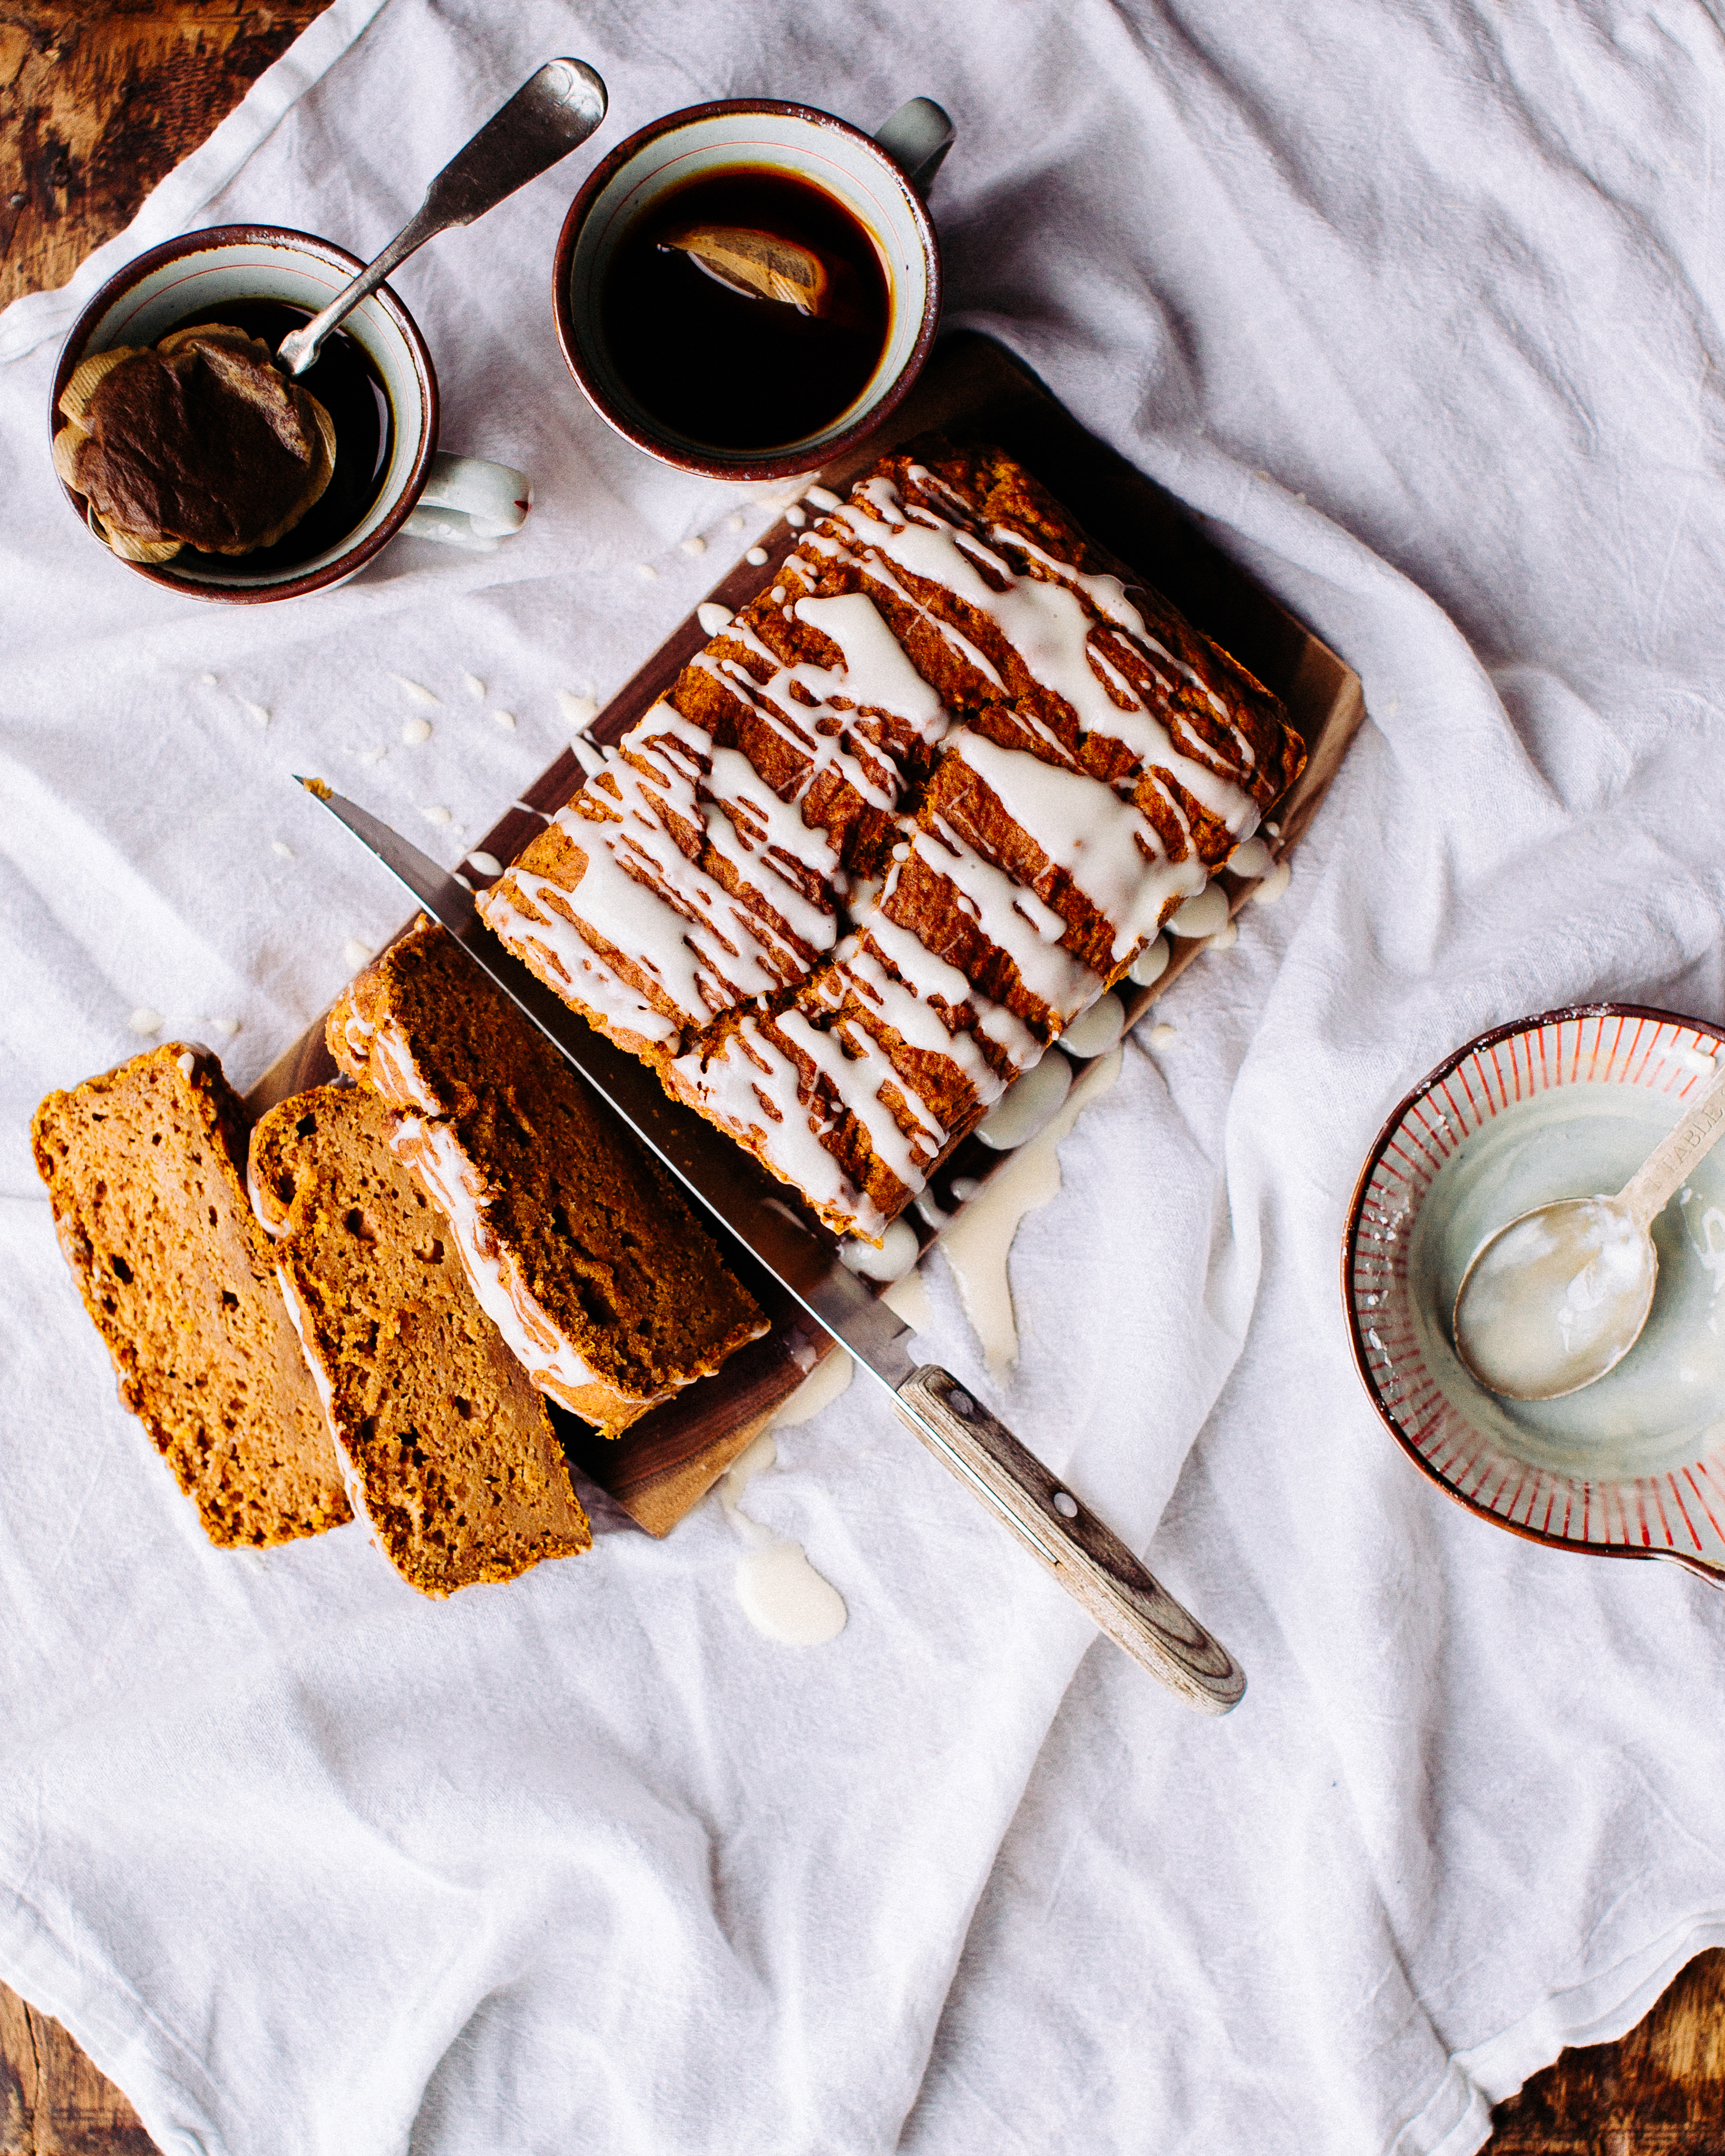 homemade pumpkin bread with cream cheese frosting drizzled across it and a cup of black tea